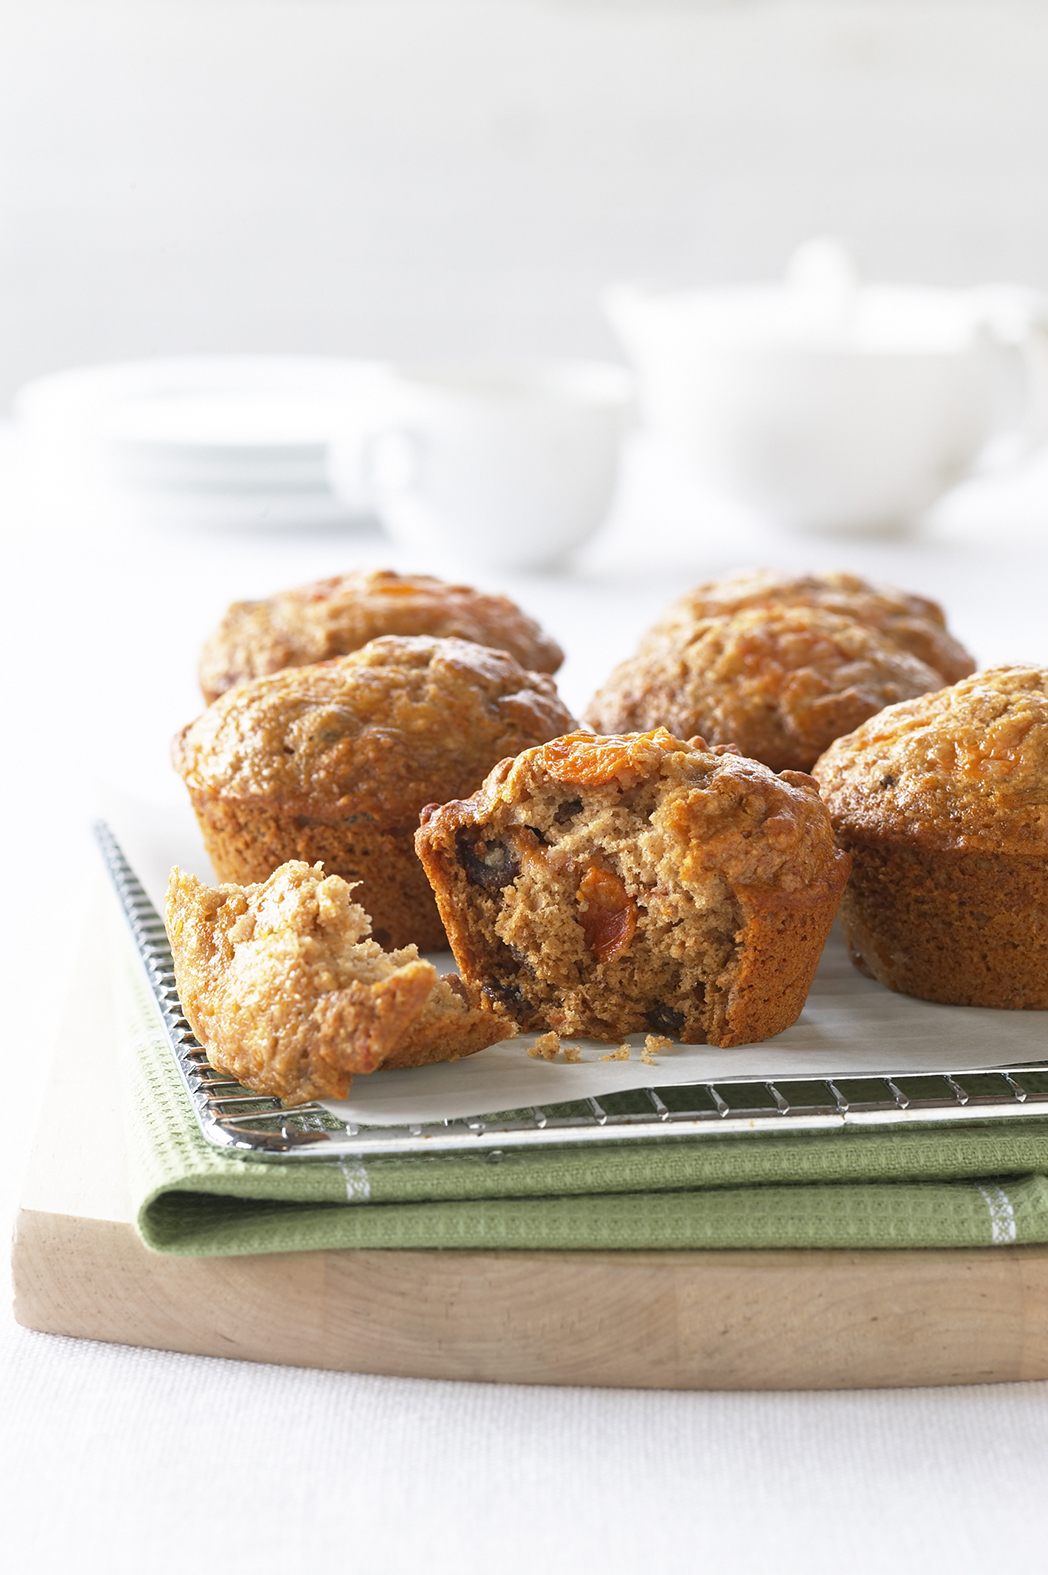 Get cooking with persimmons with this delicious and low fat muffin recipe